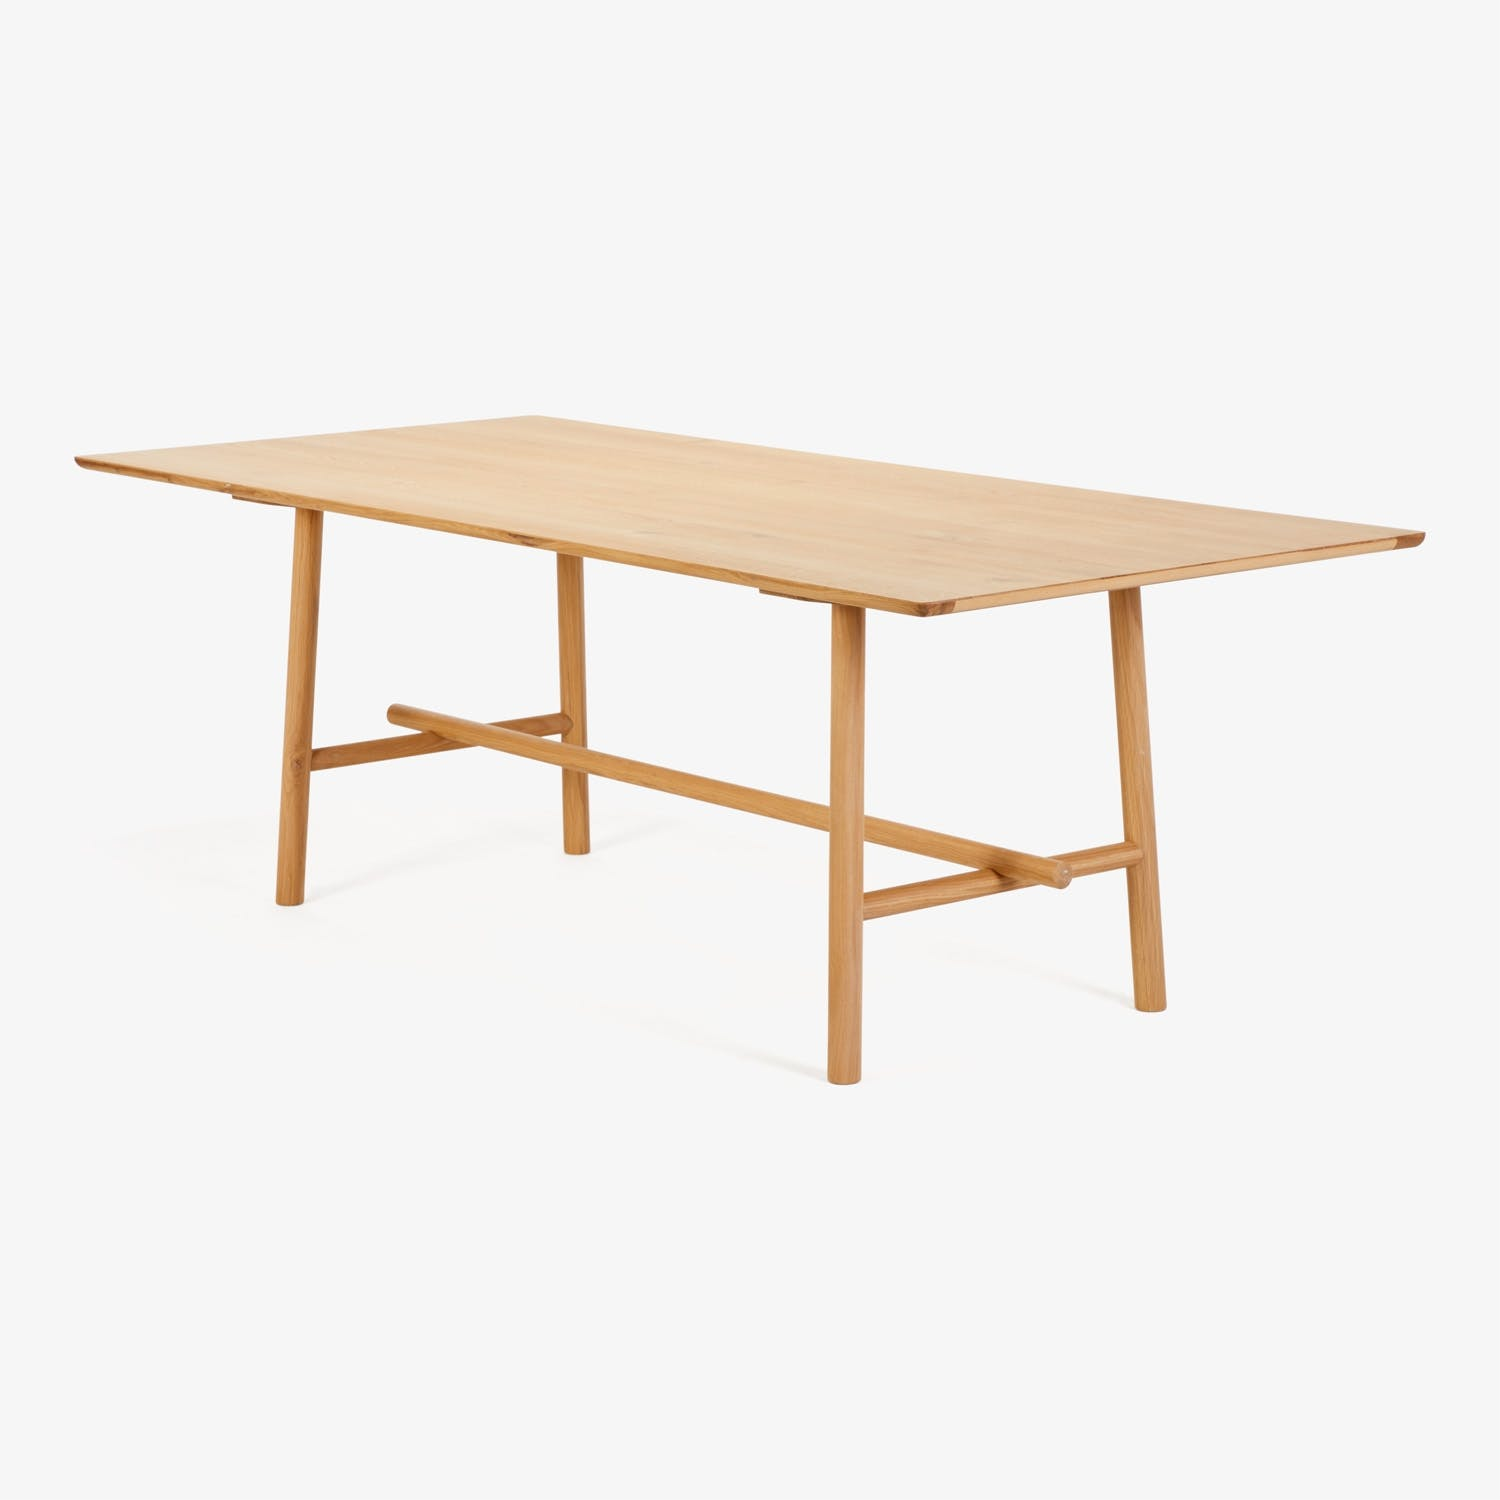 Ethnicraft Oak Profile Dining Table Medium